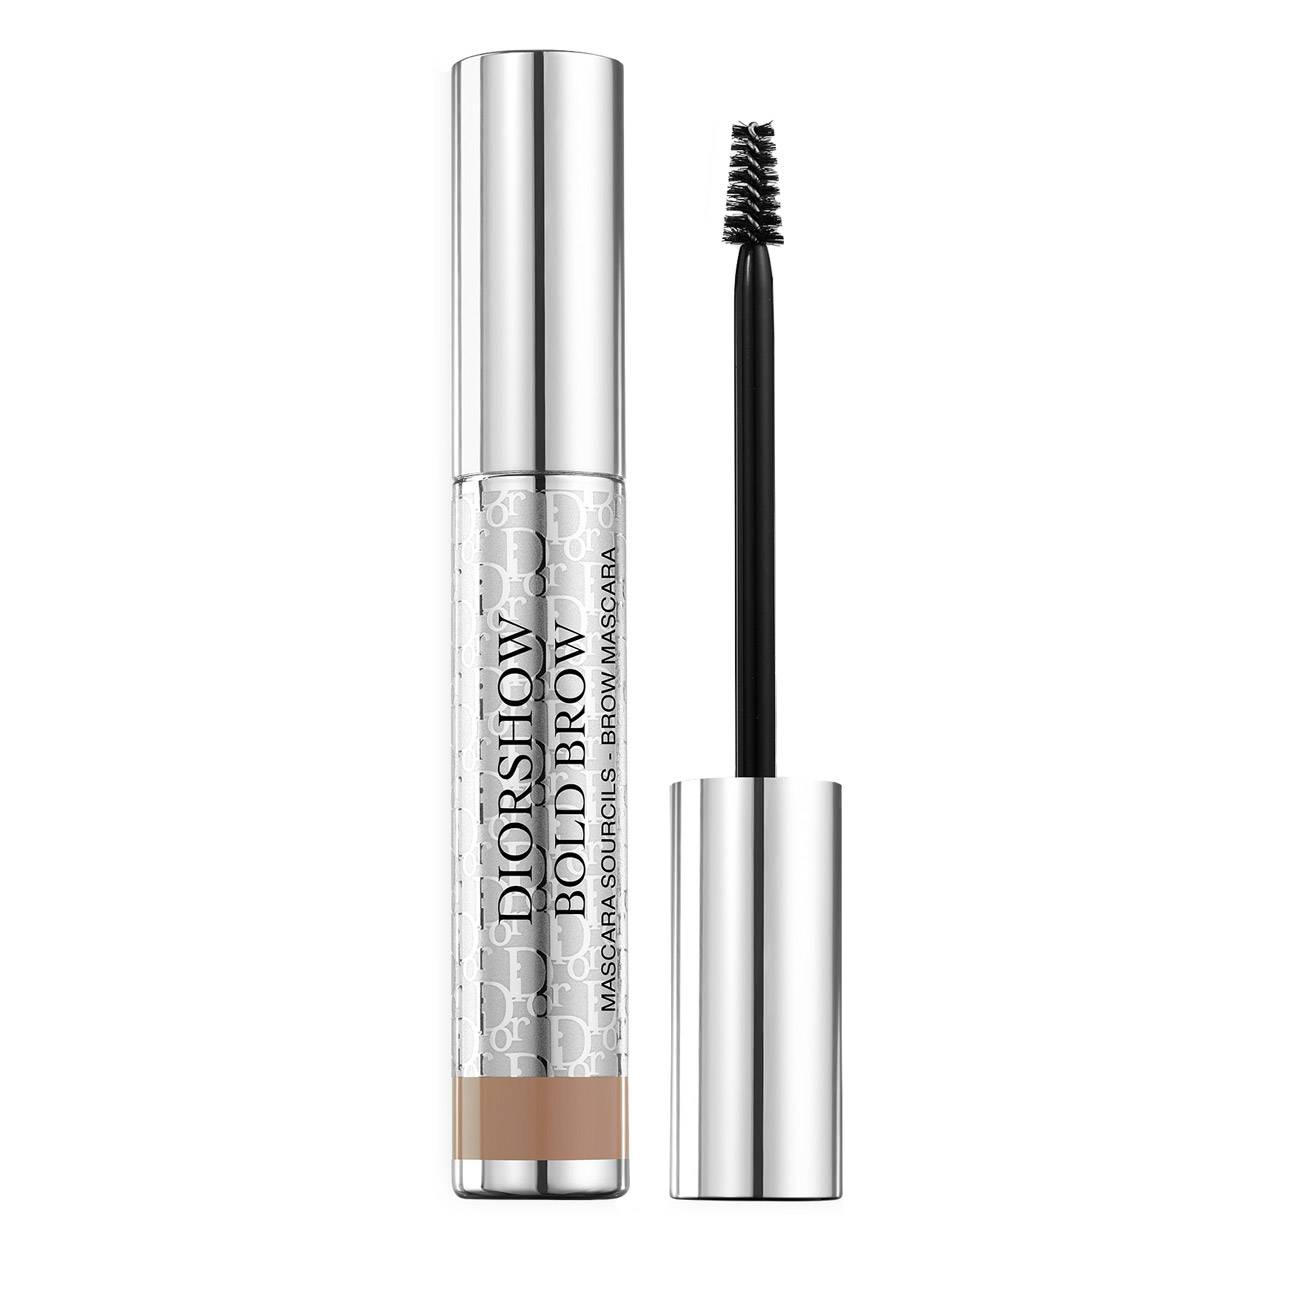 DIORSHOW BOLD BROW - 5 ml 011-Light imagine produs